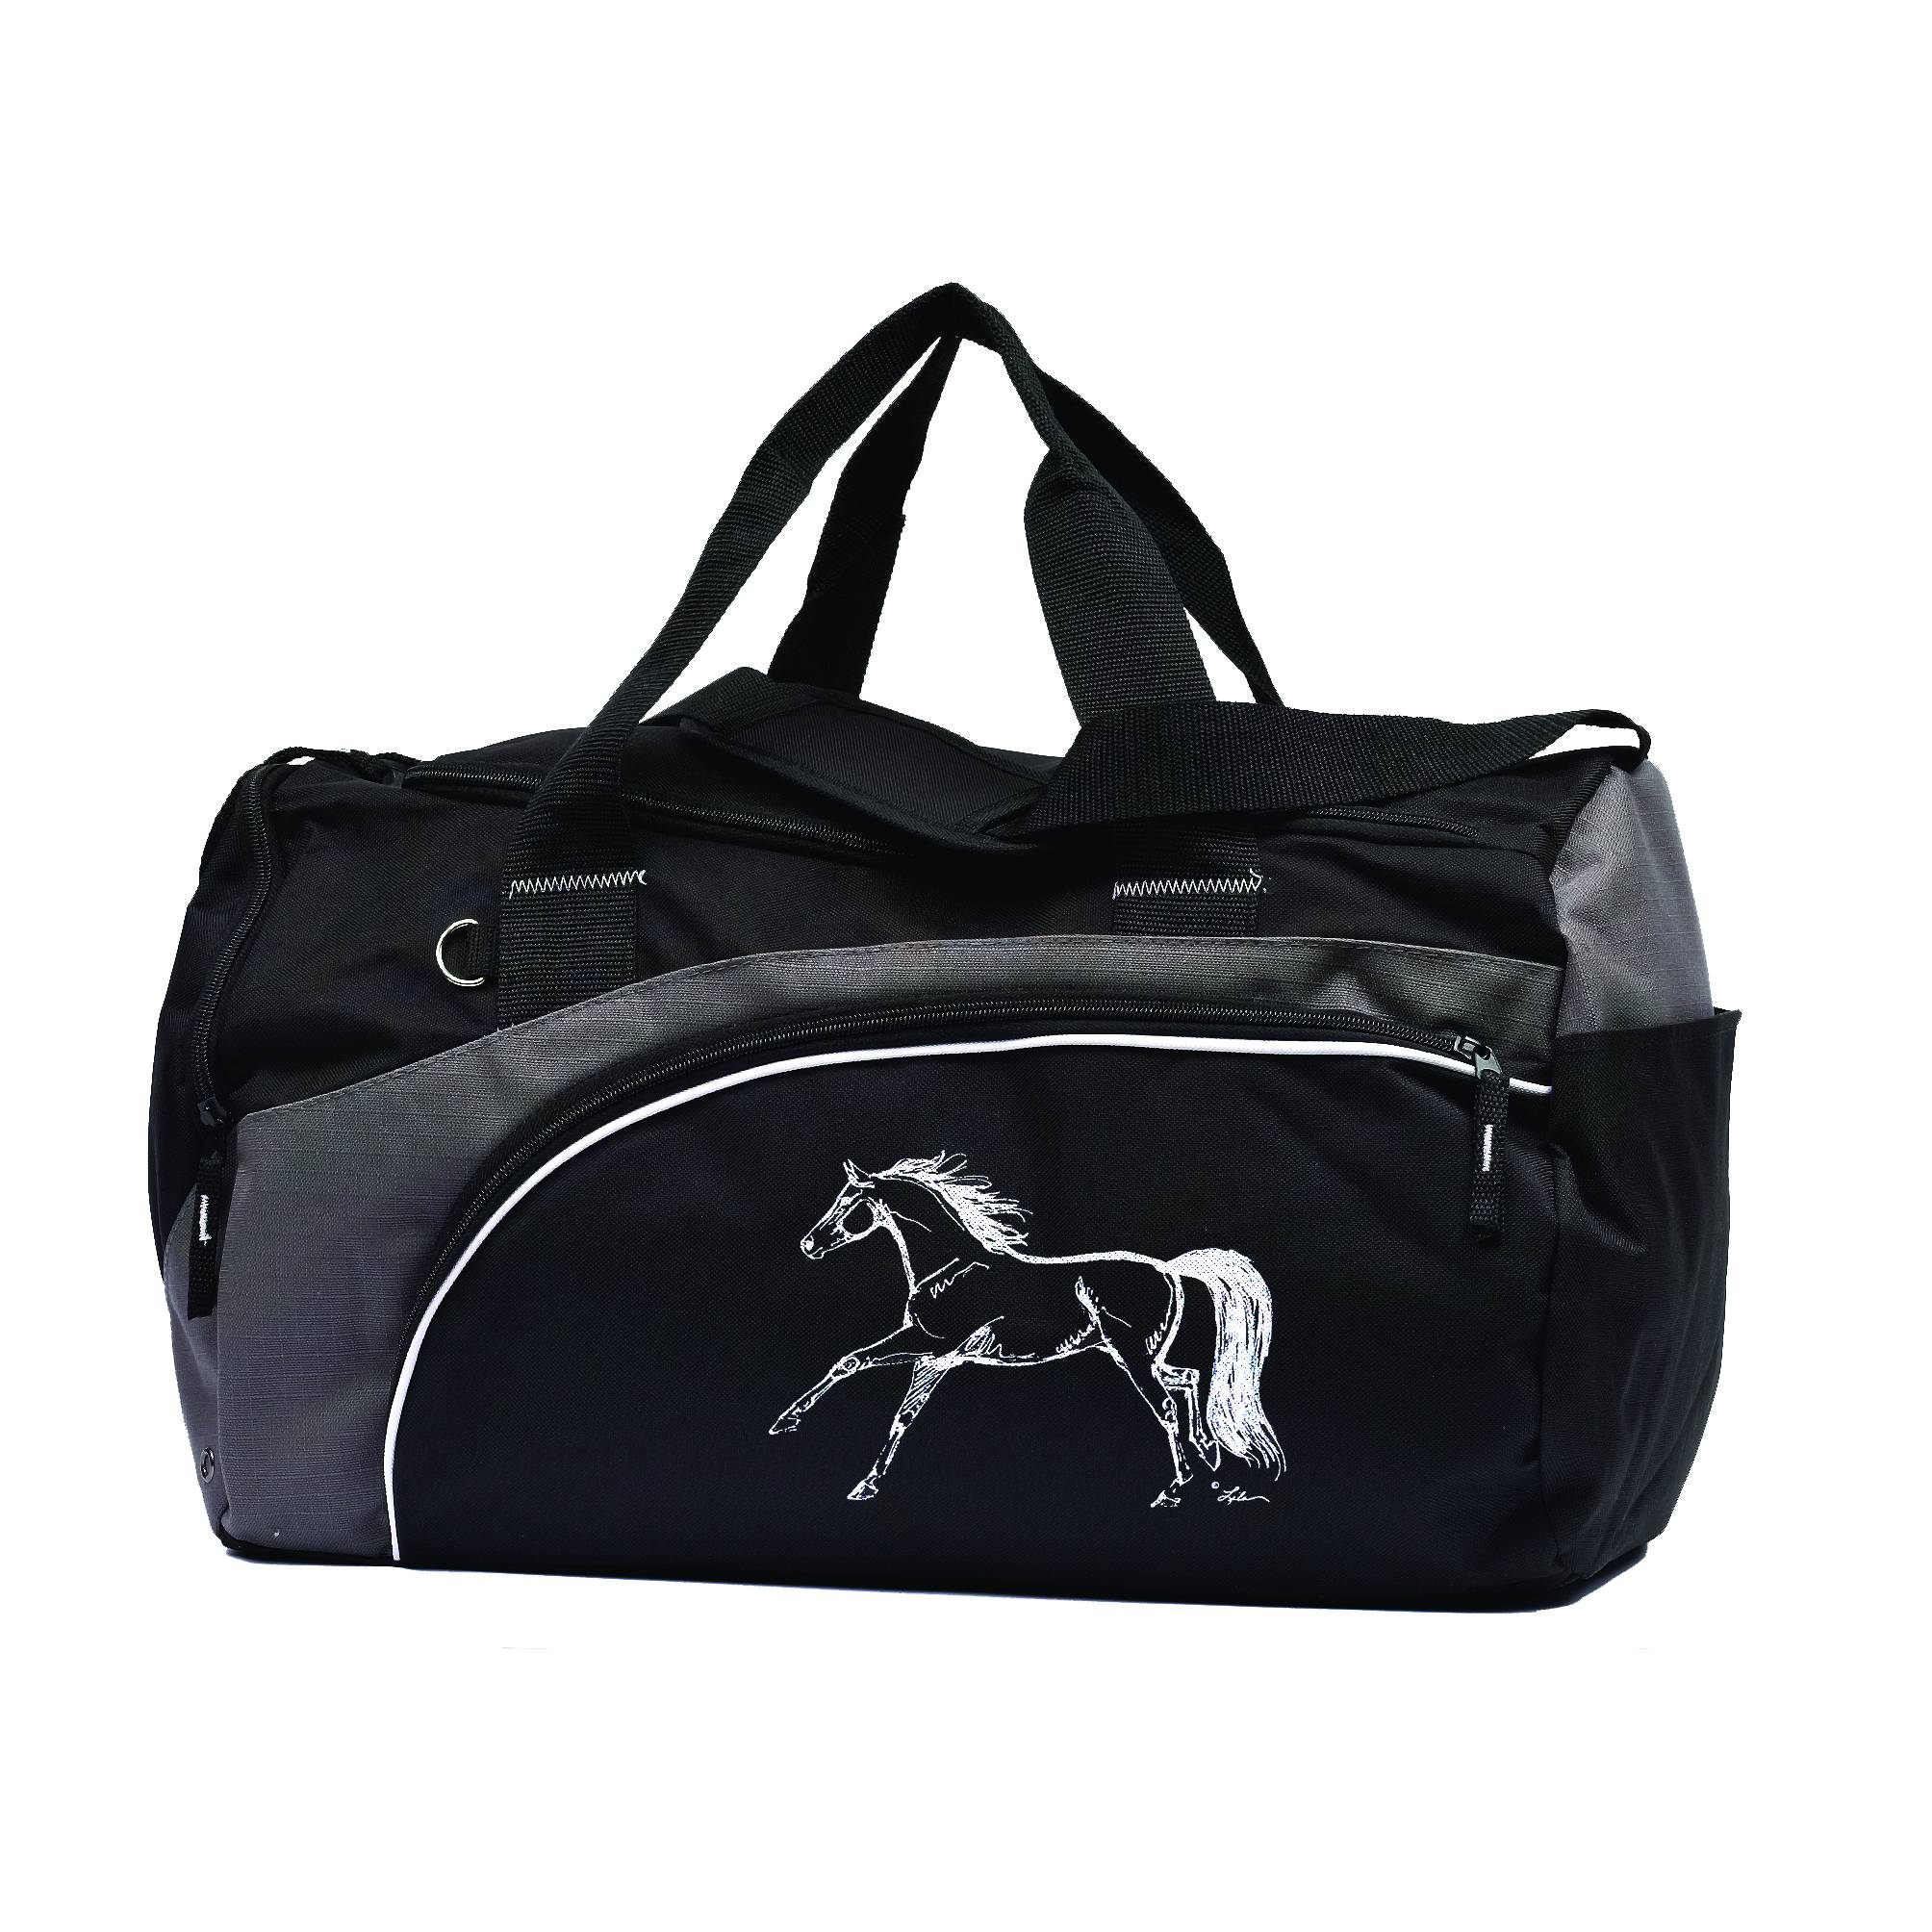 Duffle Bag with Horse